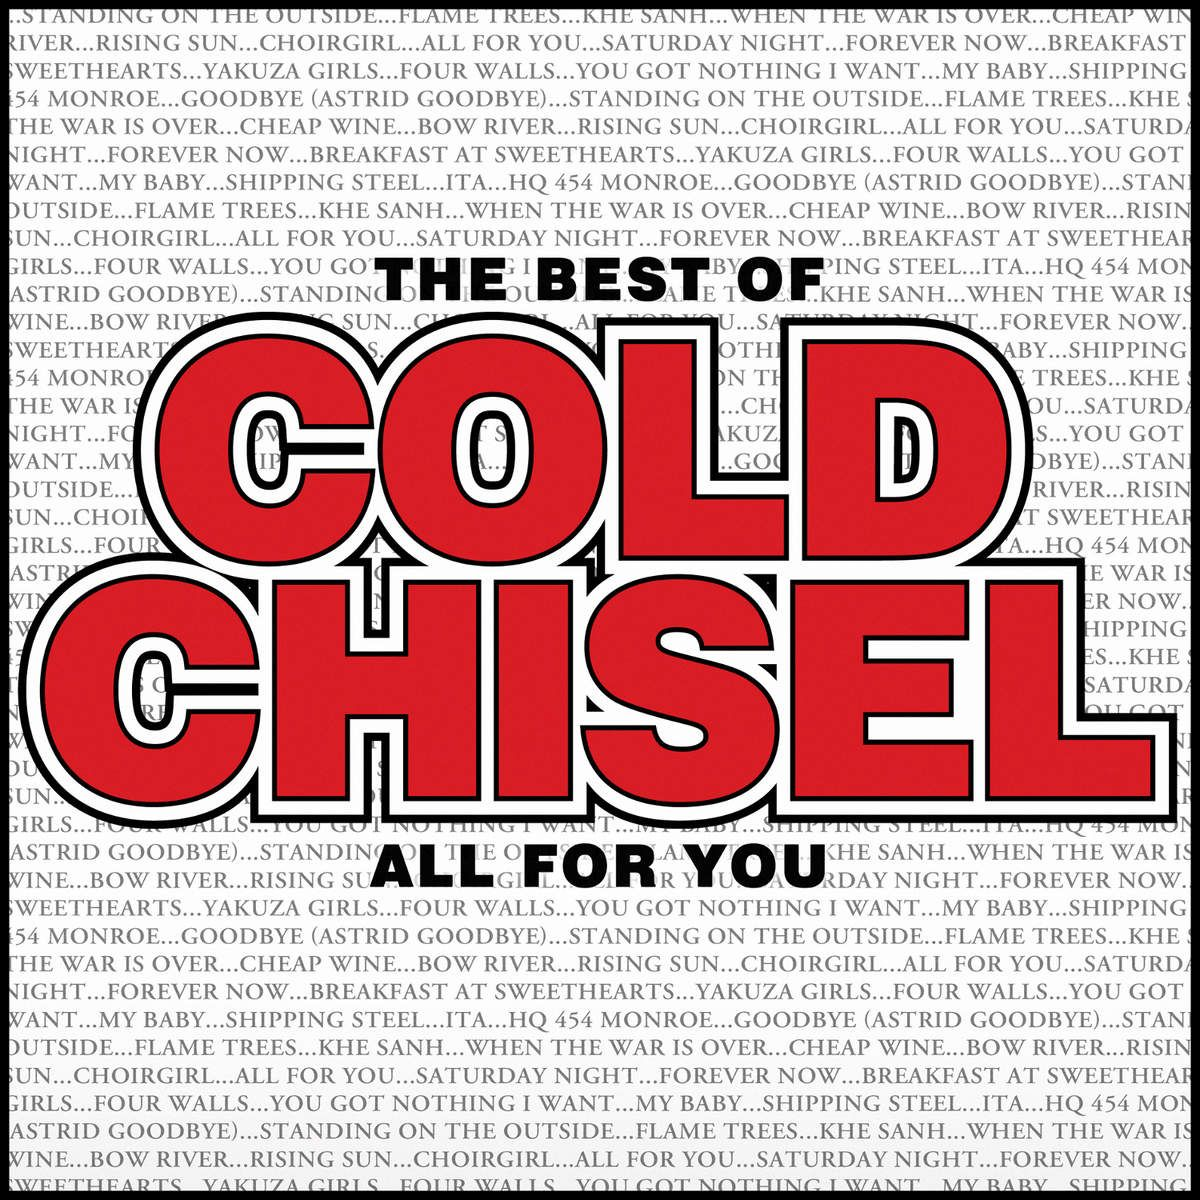 Cold Chisel - The Best Of Cold Chisel - All For You album cover